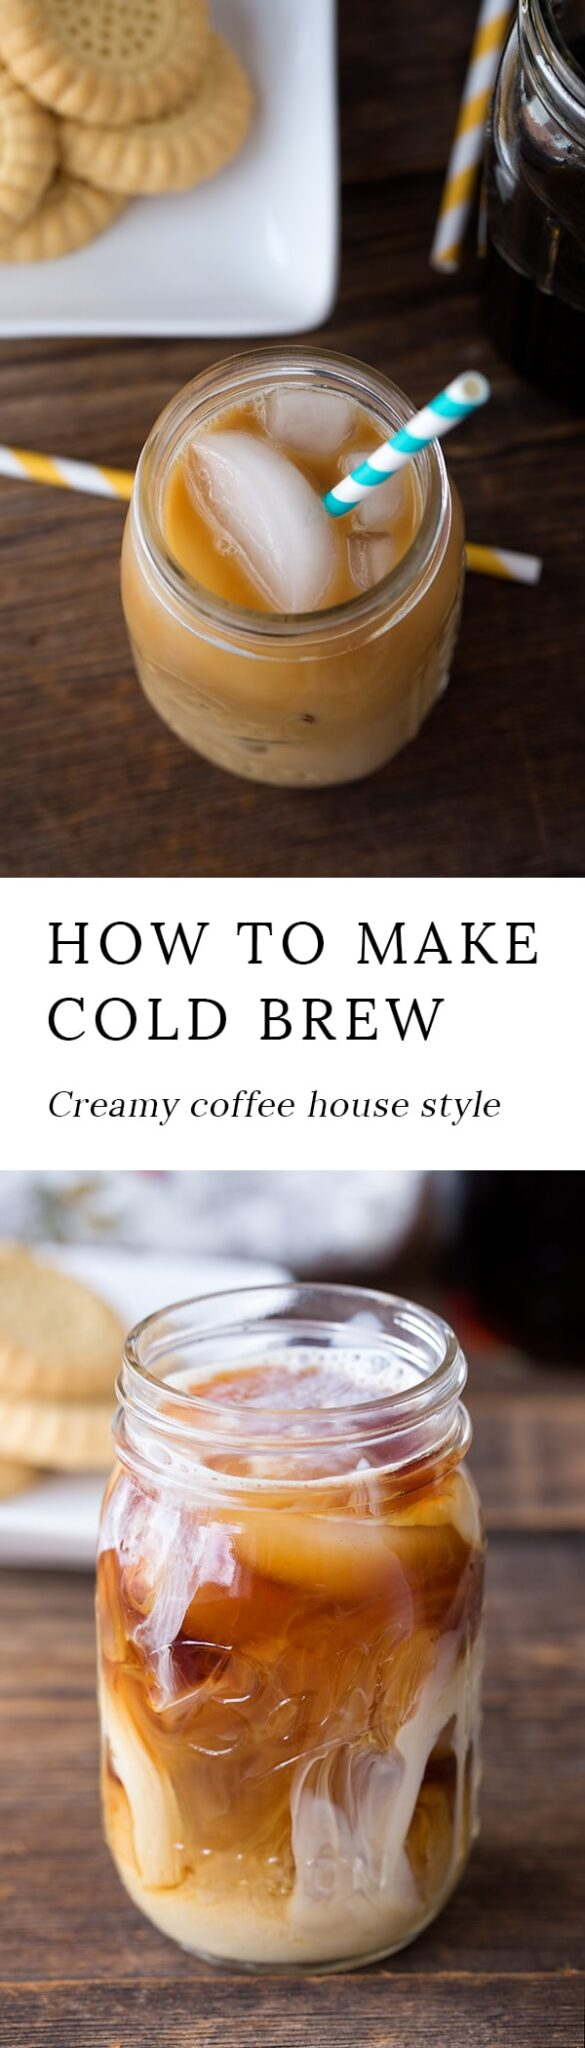 Just in time for summer, learn how to make delicious coffee shop style Cold Brew Coffee right in your own kitchen.